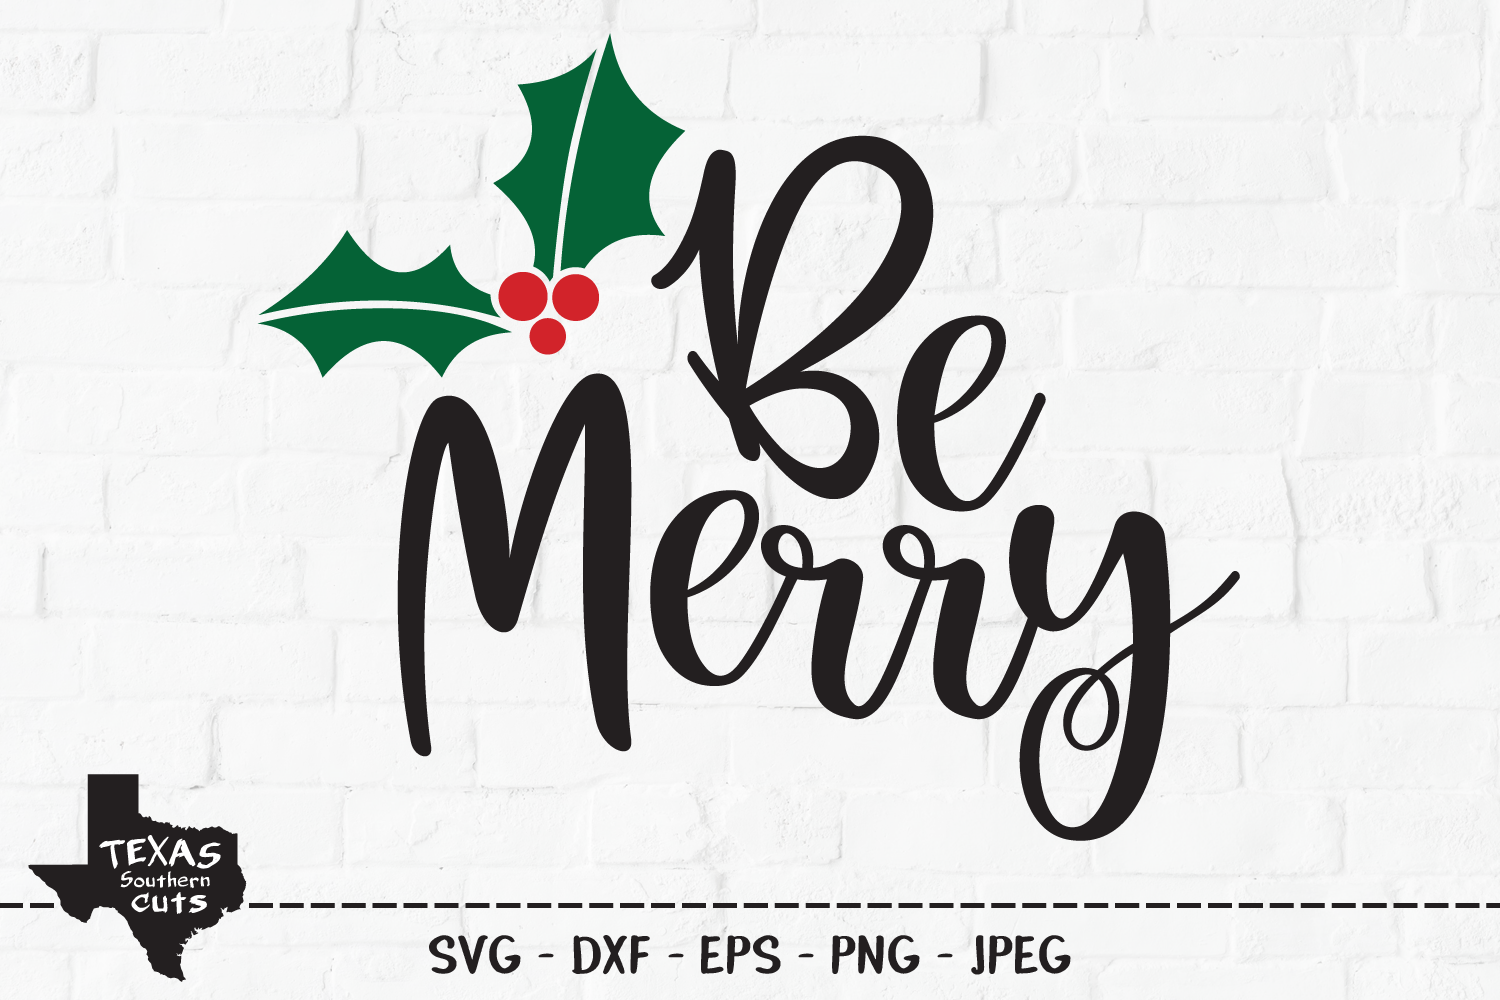 Download Free Be Merry Christmas Shirt Design Graphic By Texassoutherncuts for Cricut Explore, Silhouette and other cutting machines.